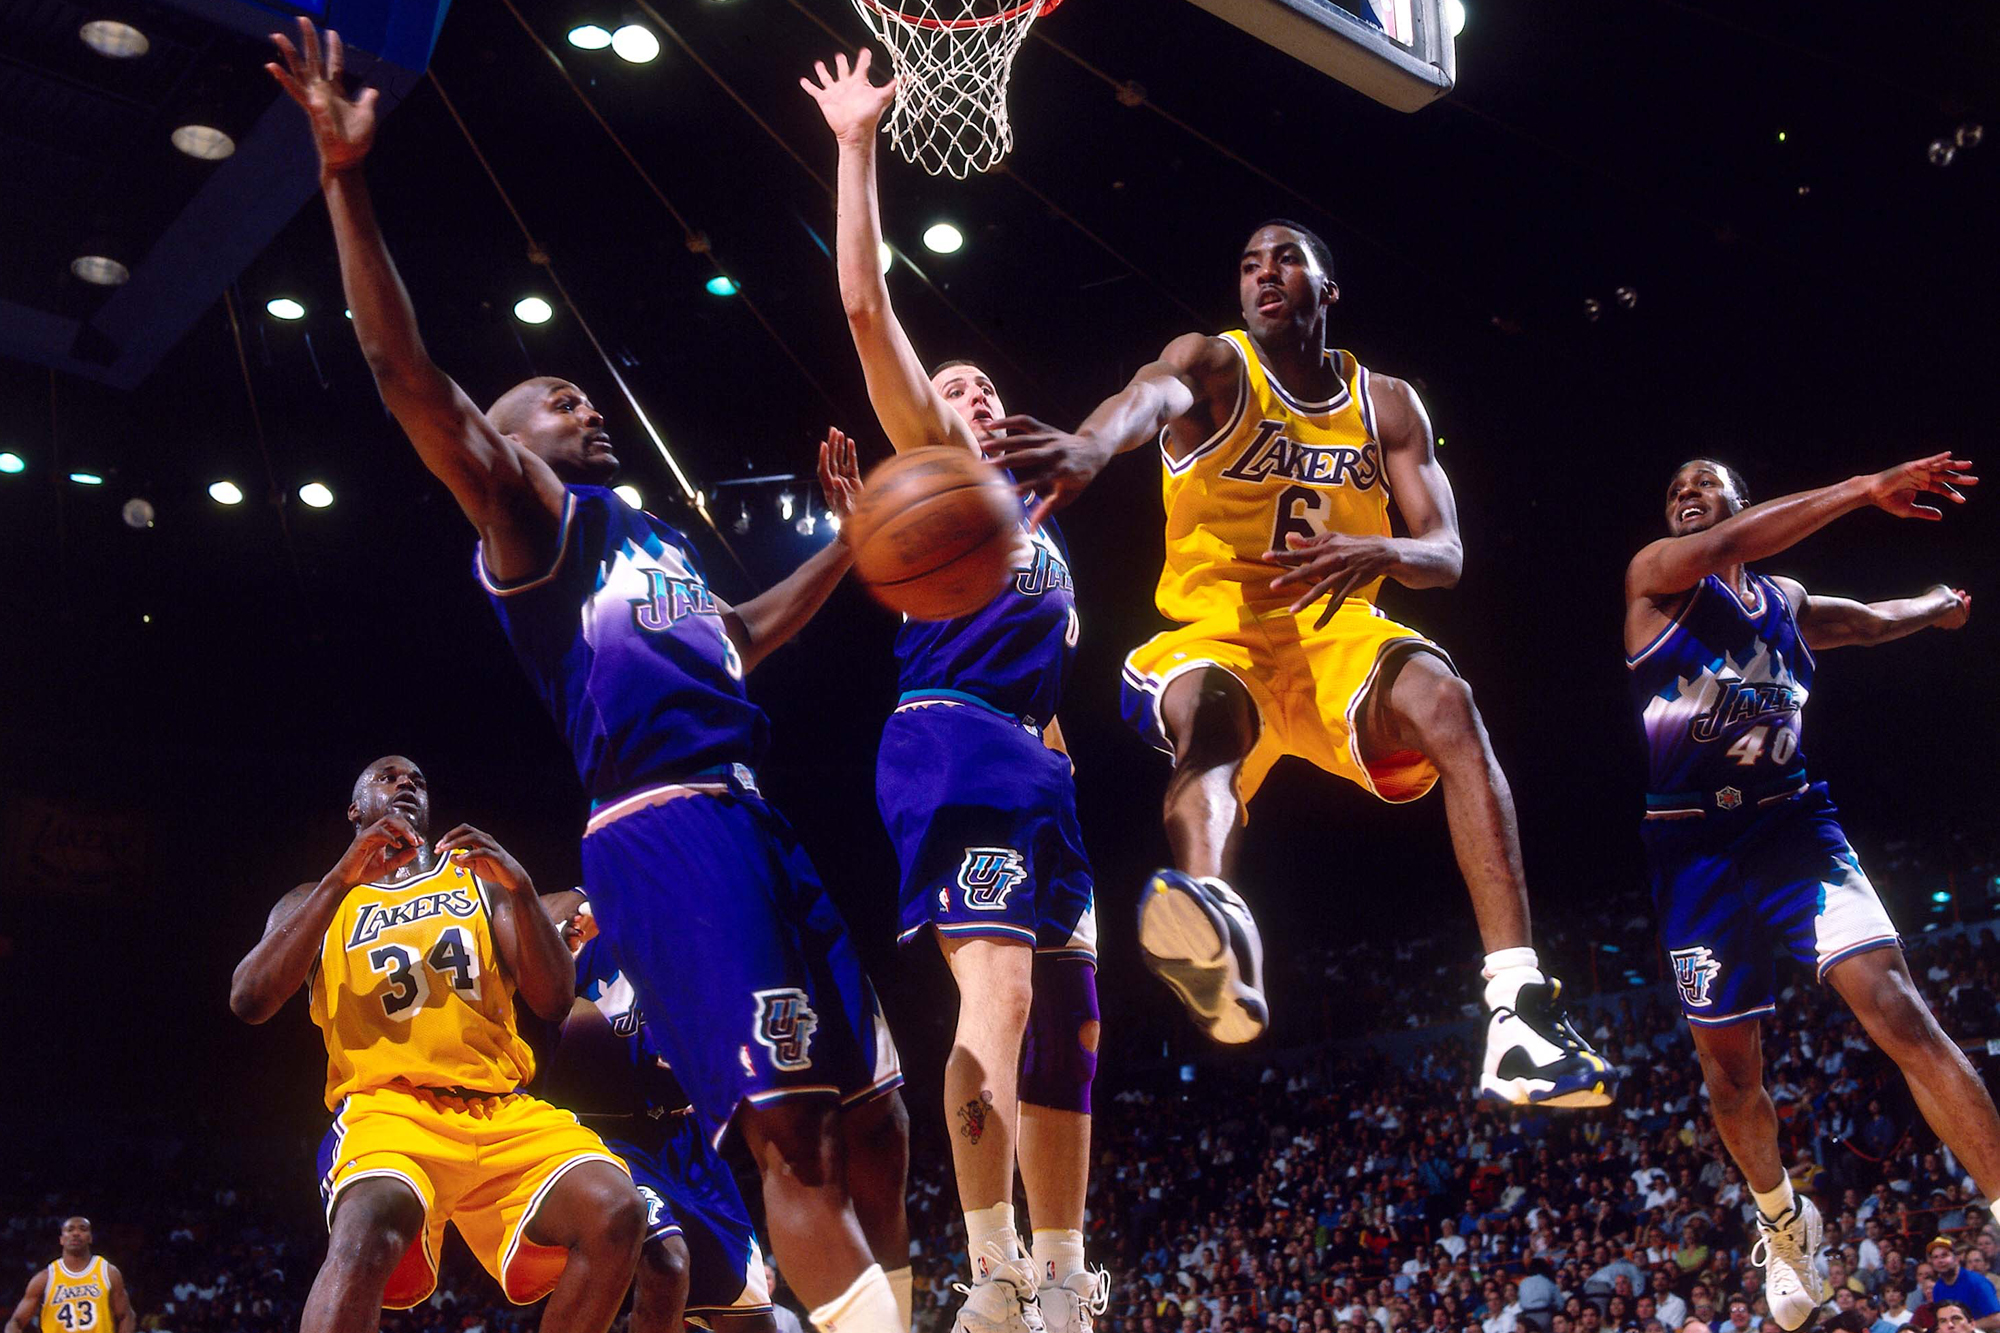 59797c0a8cdce7 Eddie Jones (second from right) of the Los Angeles Lakers passes against  the Utah Jazz in Game 3 of the Western Conference finals played on May 22